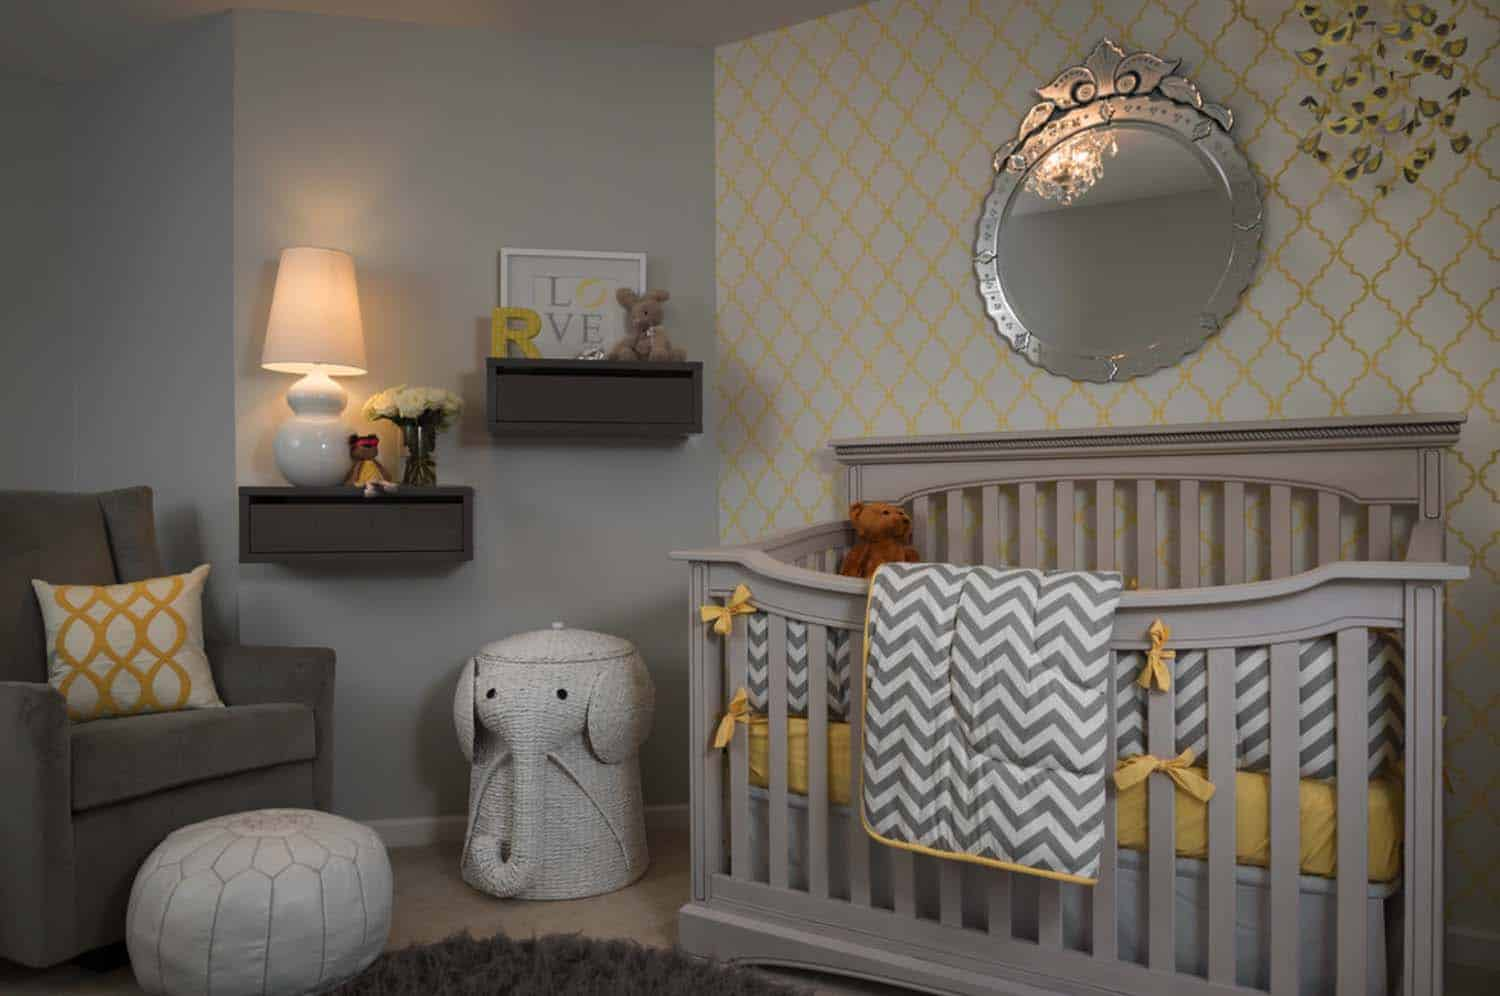 Stylish Nursery Decorating Ideas-14-1 Kindesign